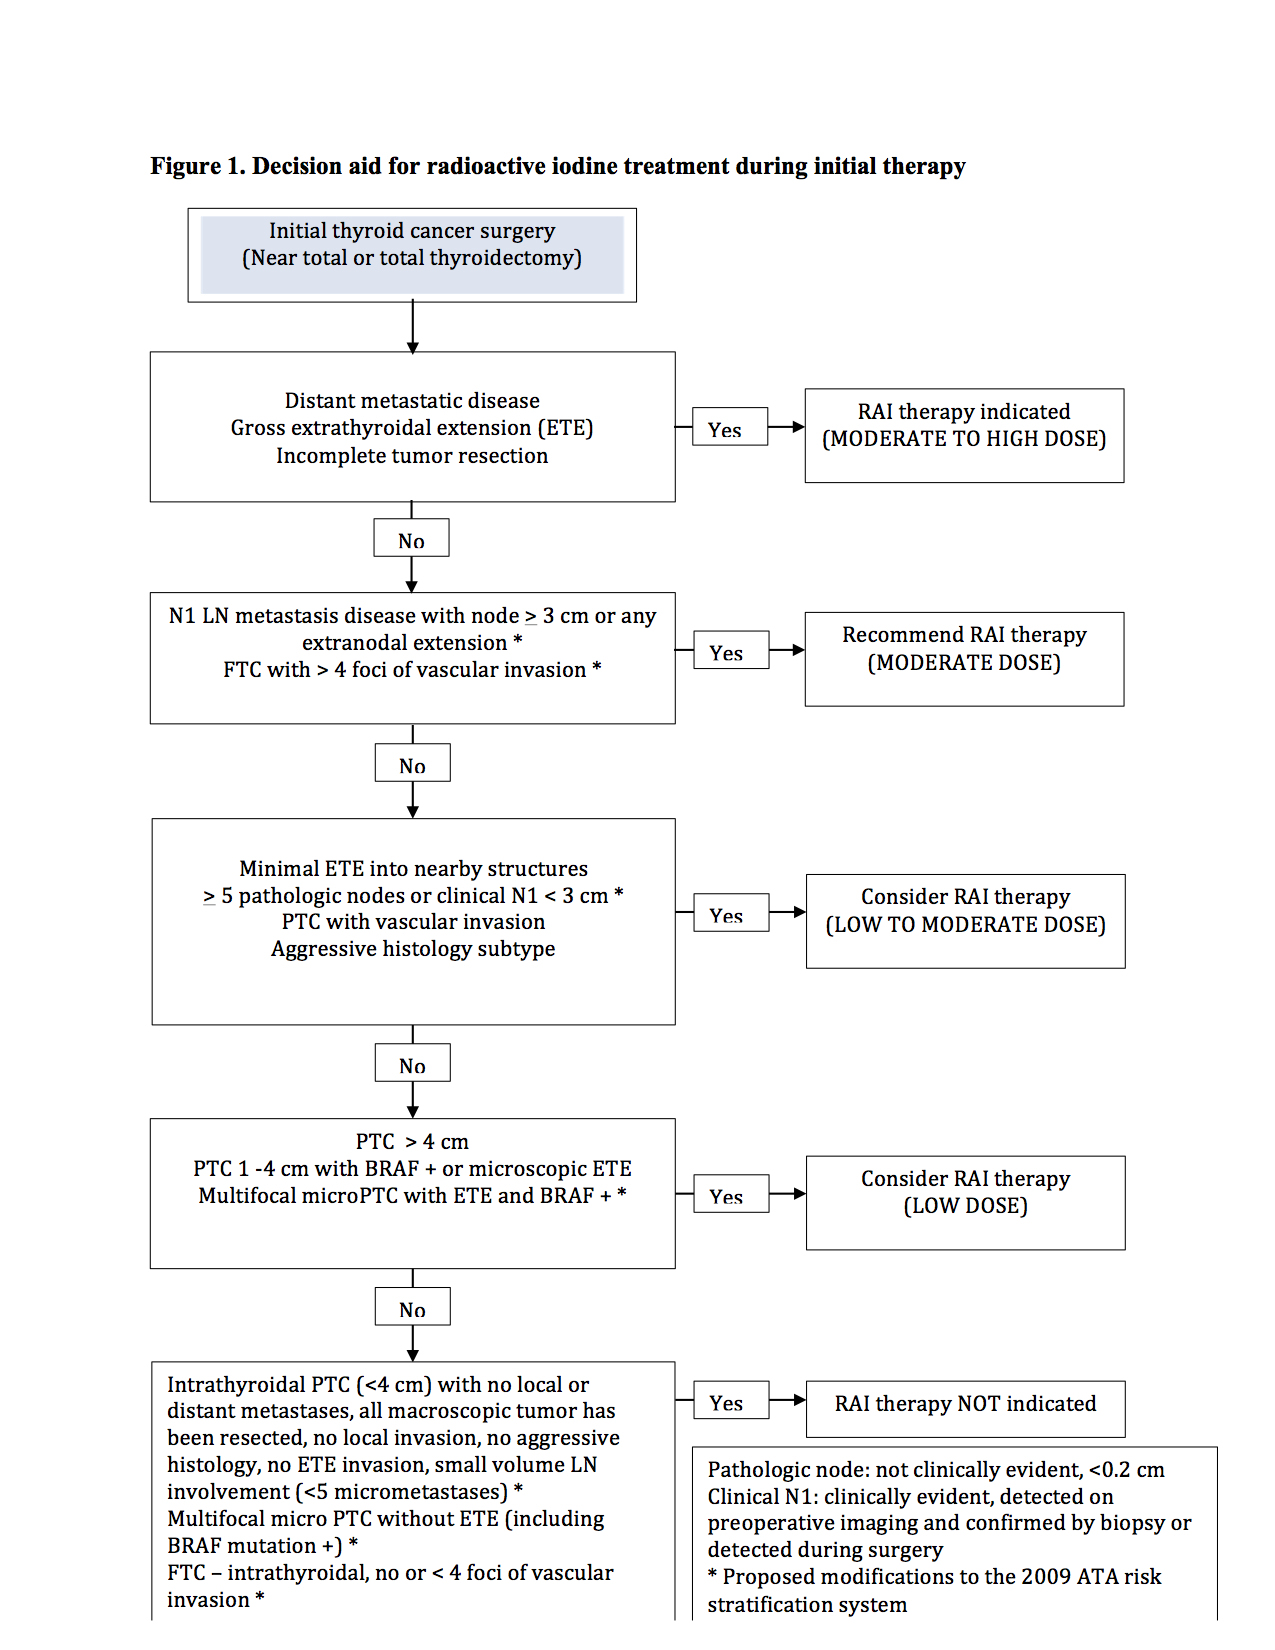 Cremation guidelines for radioactive therapy